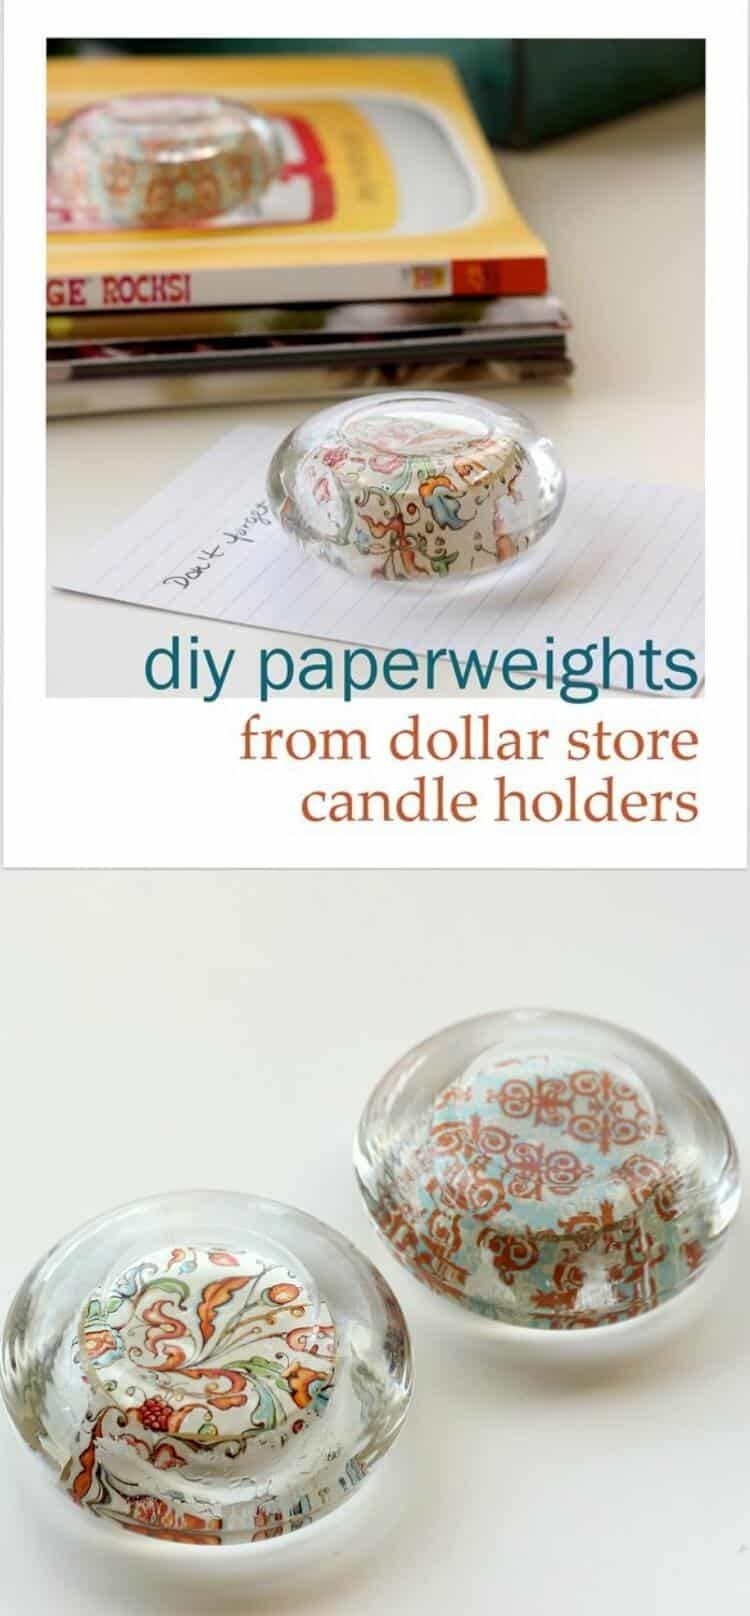 Diy paperweights from glass candle holders glass candle dollar